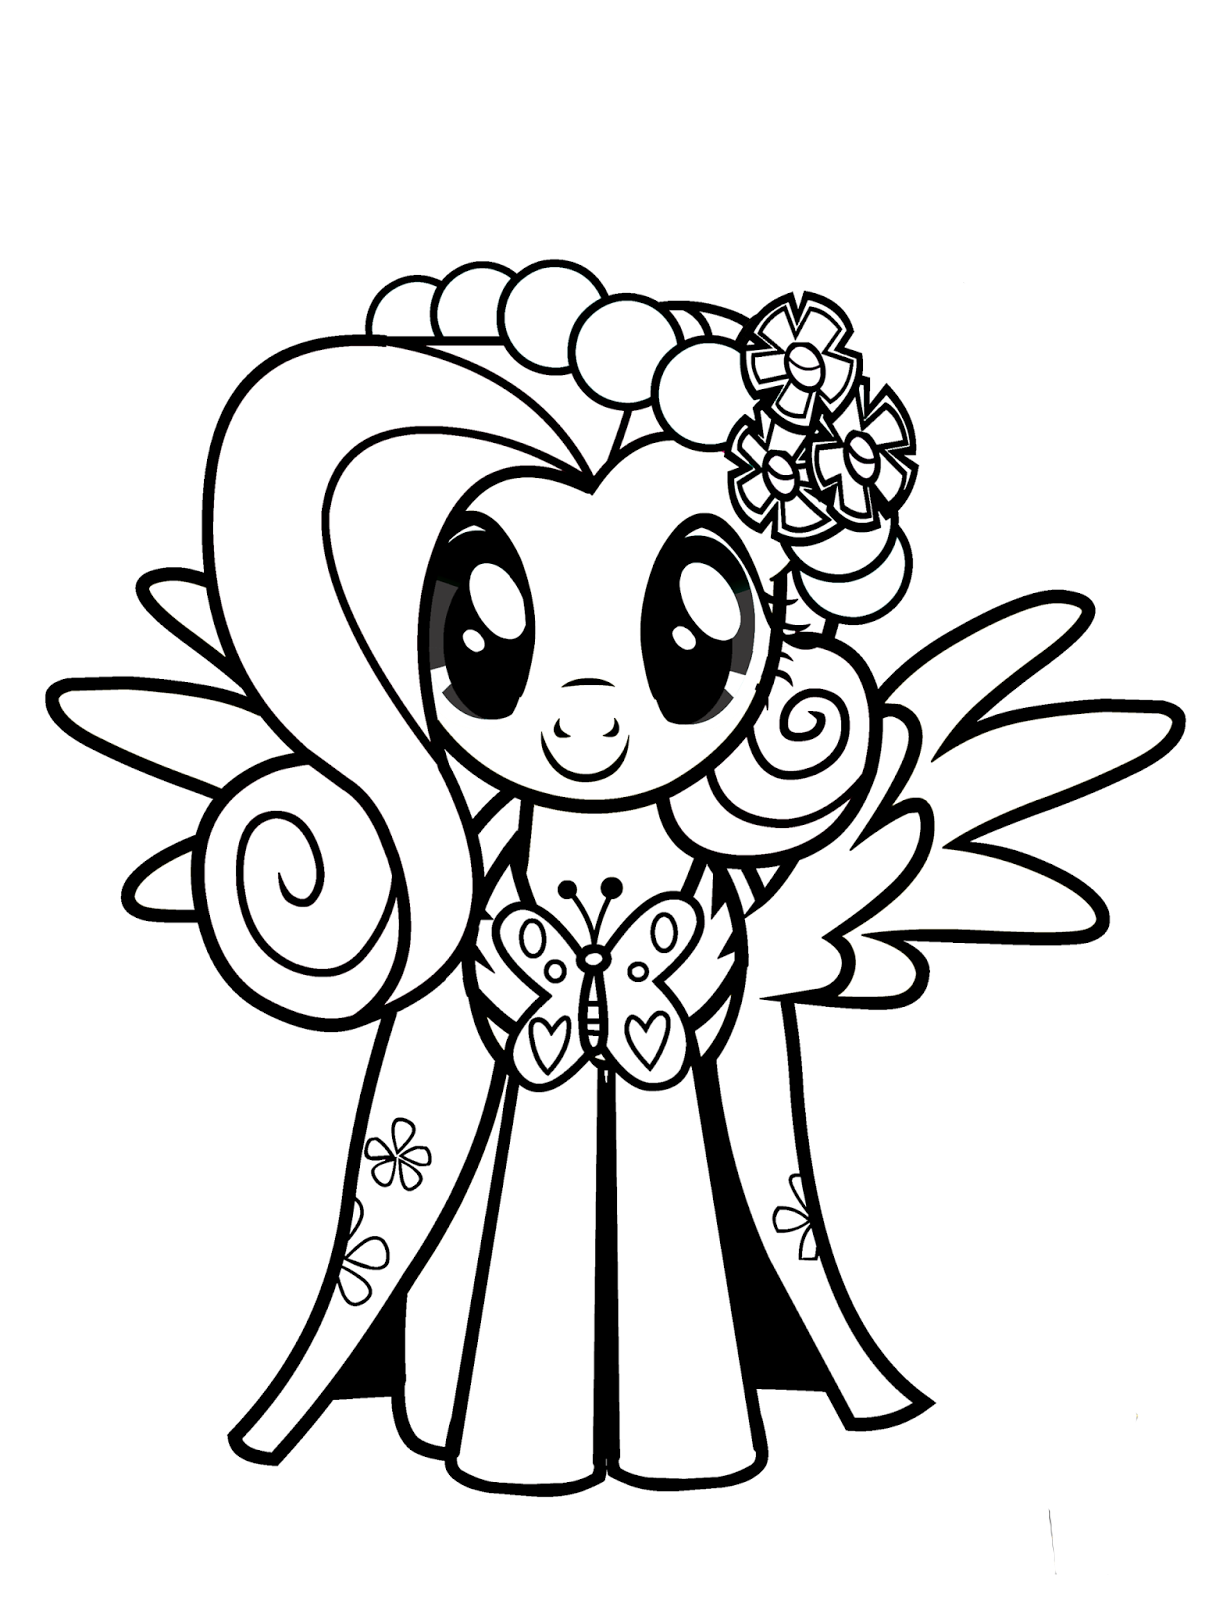 little pony to color fluttershy coloring pages best coloring pages for kids little pony to color